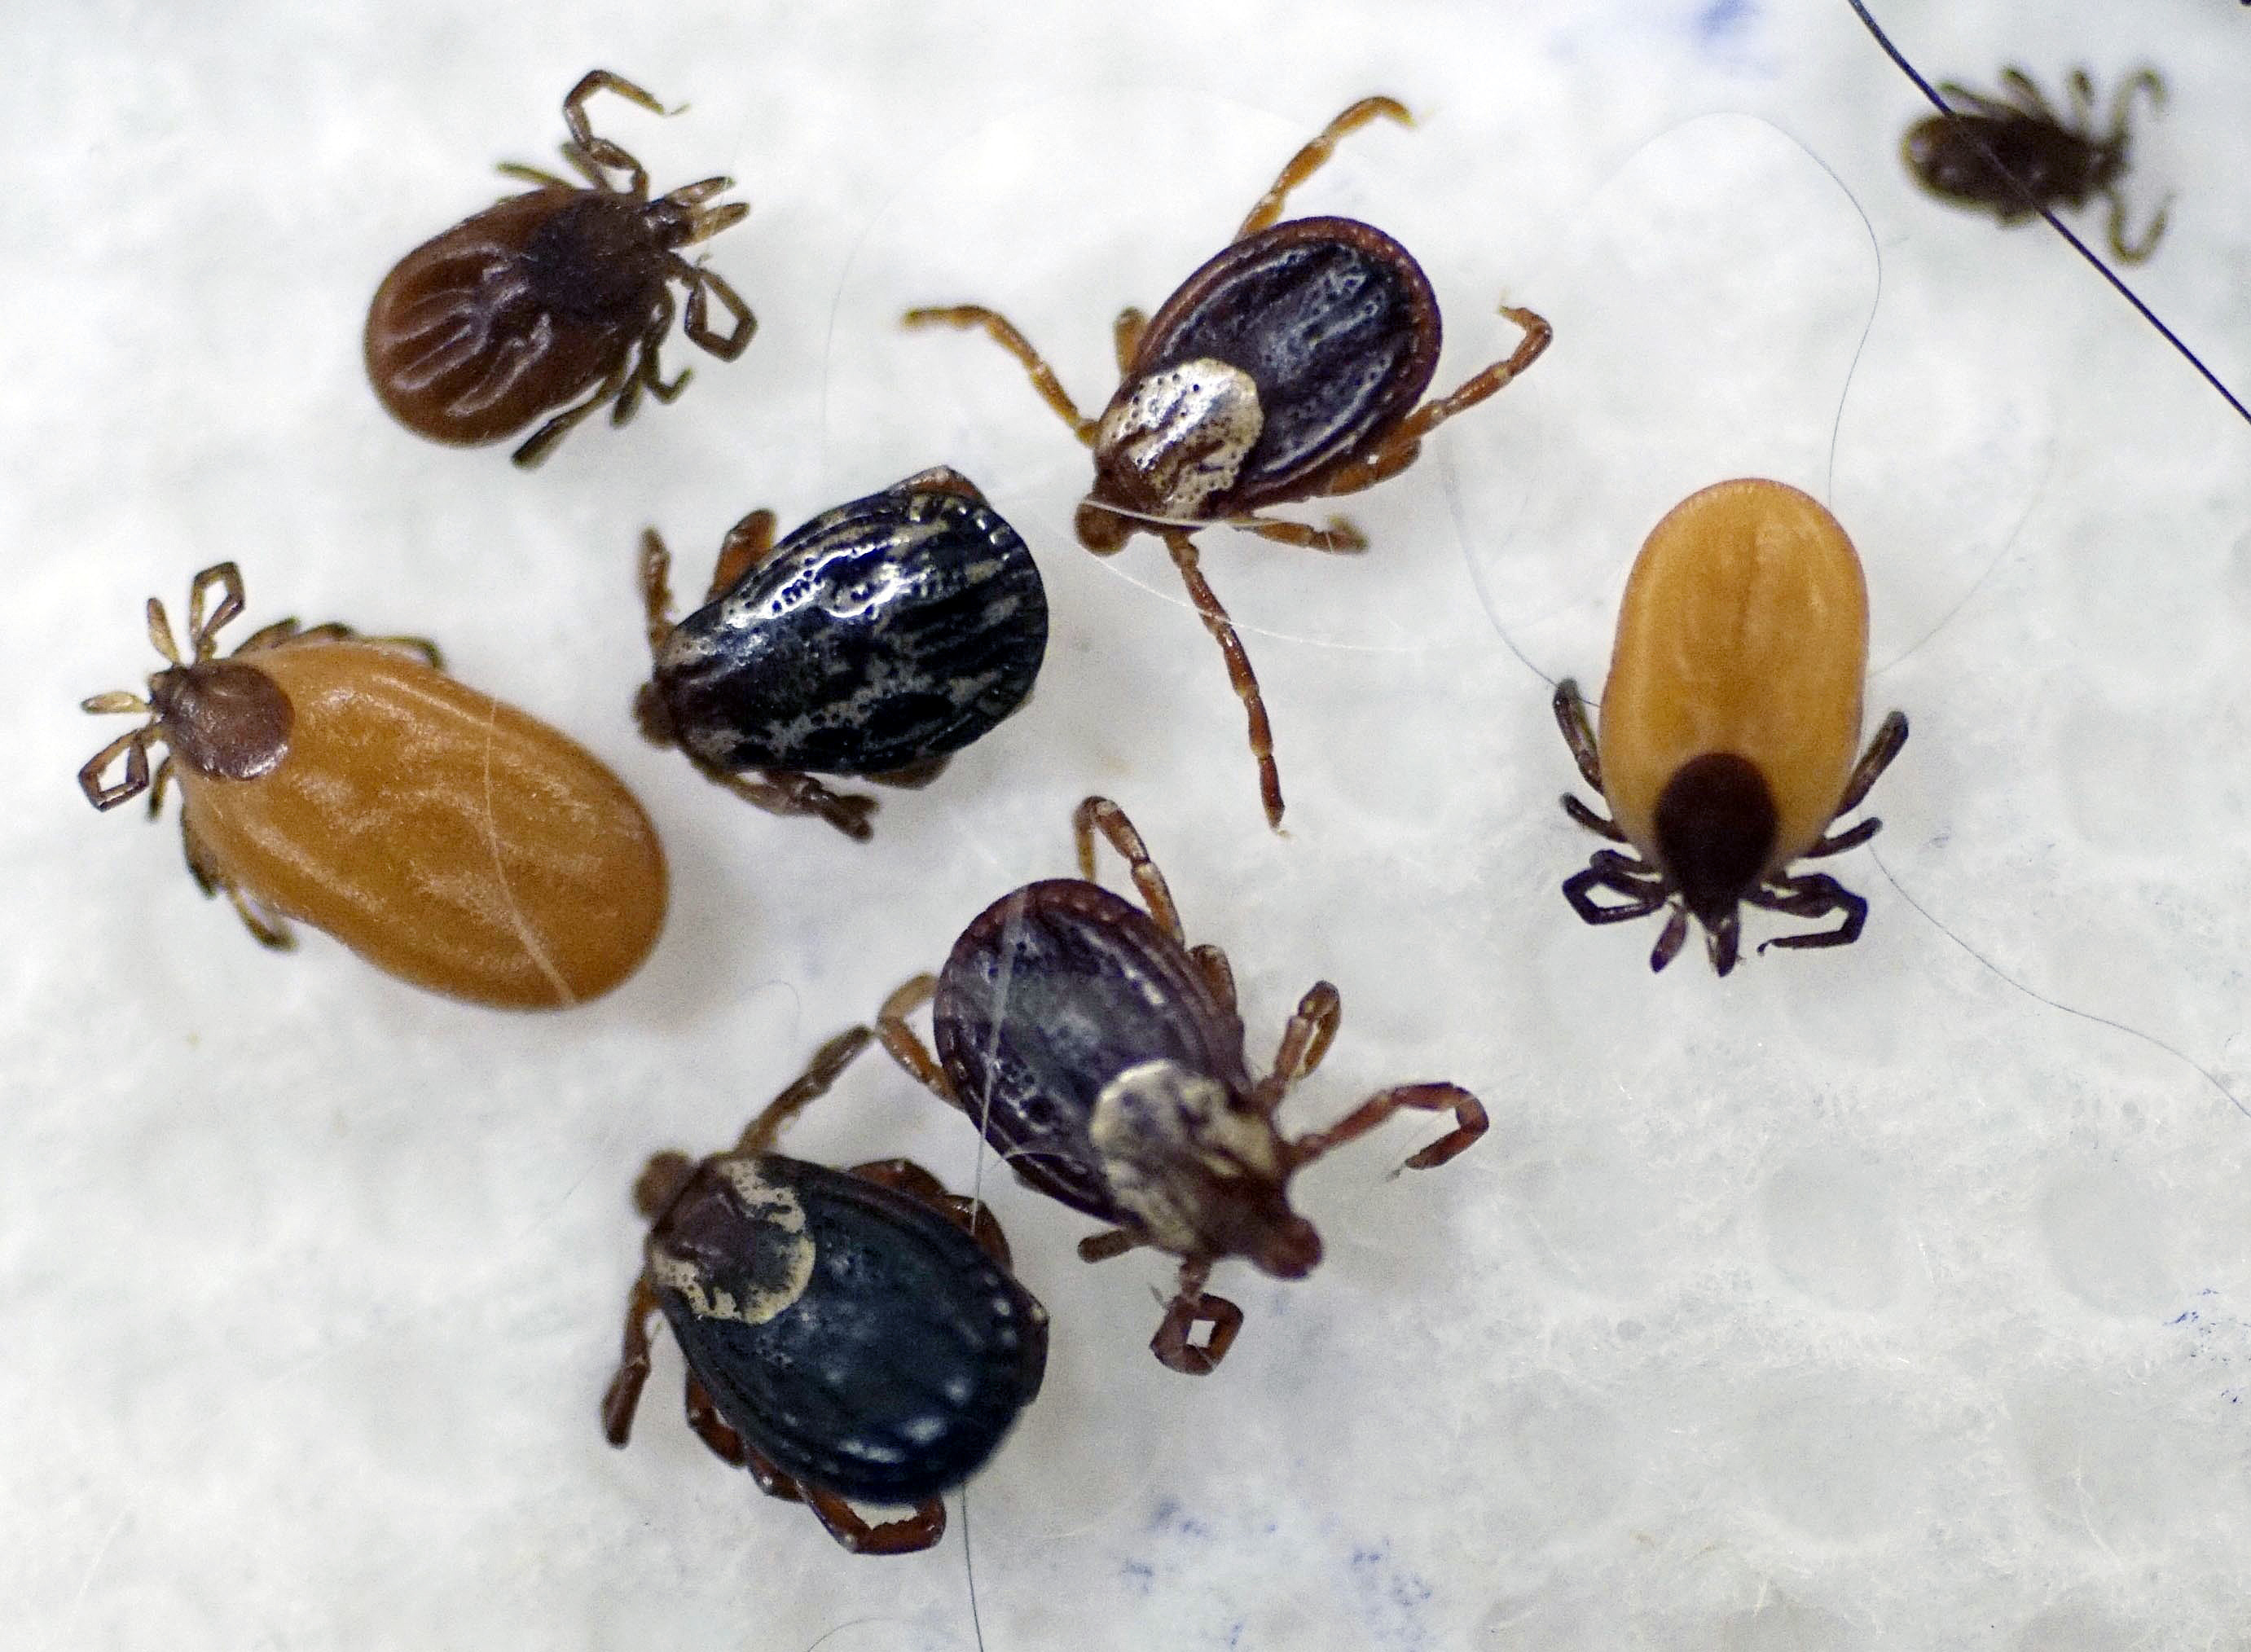 A collection of ticks at by South Street Veterinary Services in Pittsfield, Mass., in May 2017. Better here than on you. (Ben Garver/The Berkshire Eagle via AP, File)